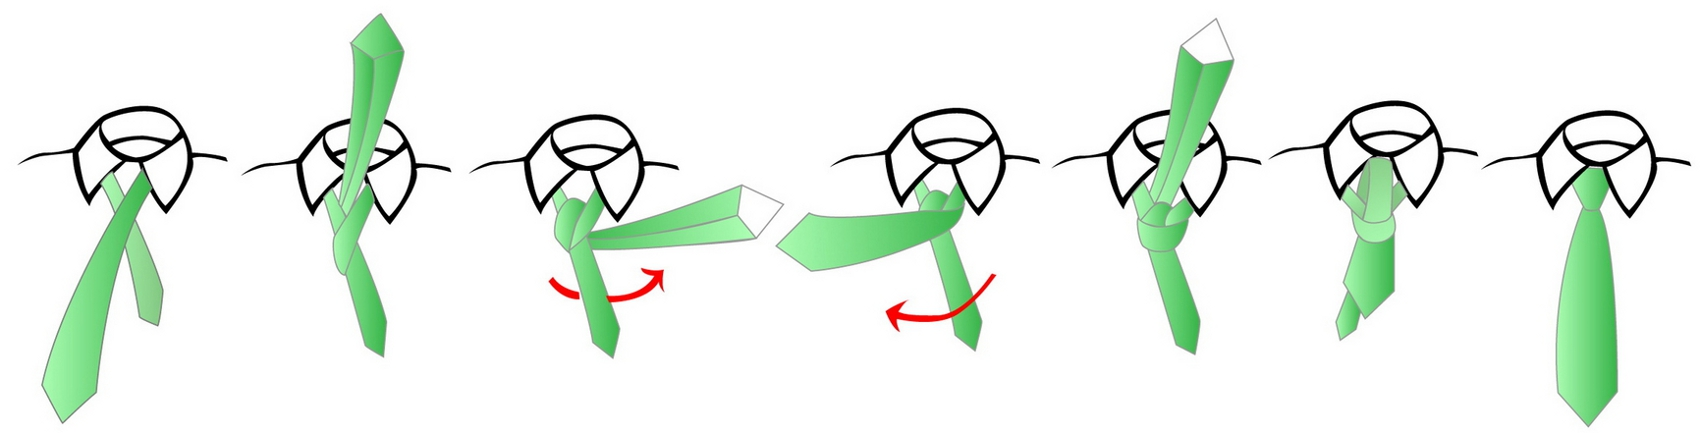 Tie a tie windsor tie knot large pictures windsor tie knot large picture ccuart Images